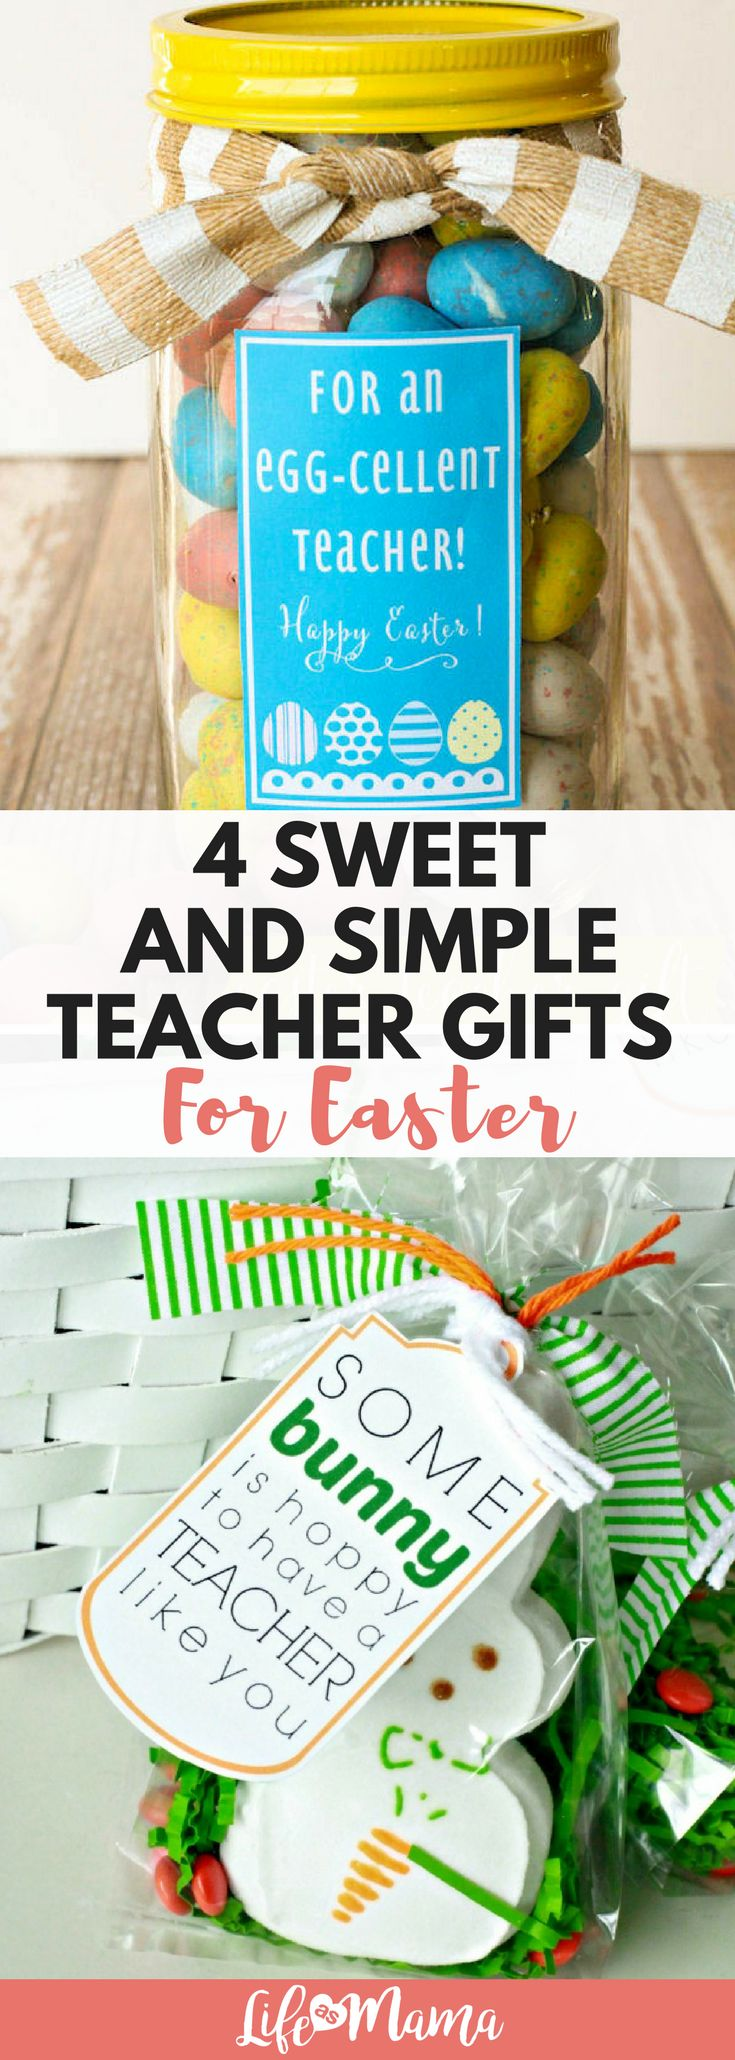 "Instead ""somebunny is happy to be your teacher"" for student easter goodies"